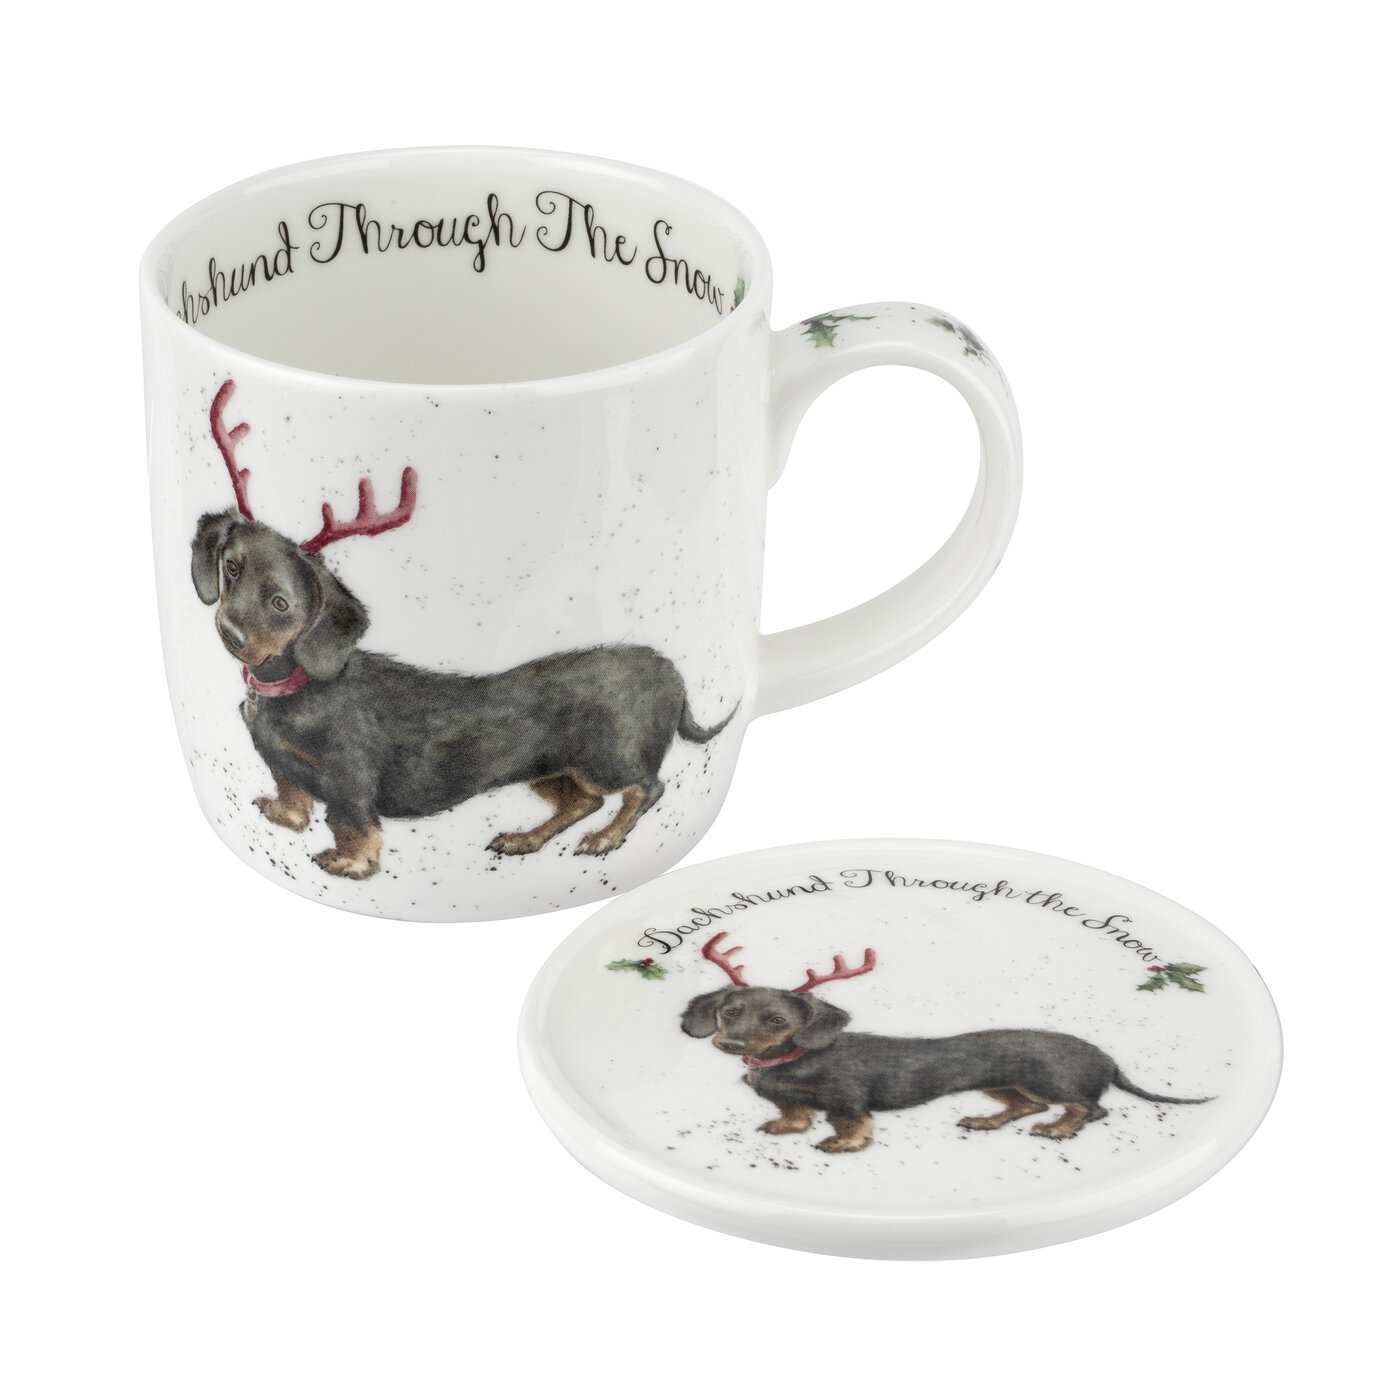 Royal Worcester Wrendale Designs 11 oz Mug & Coaster Set Dachshund Through The Snow image number 0